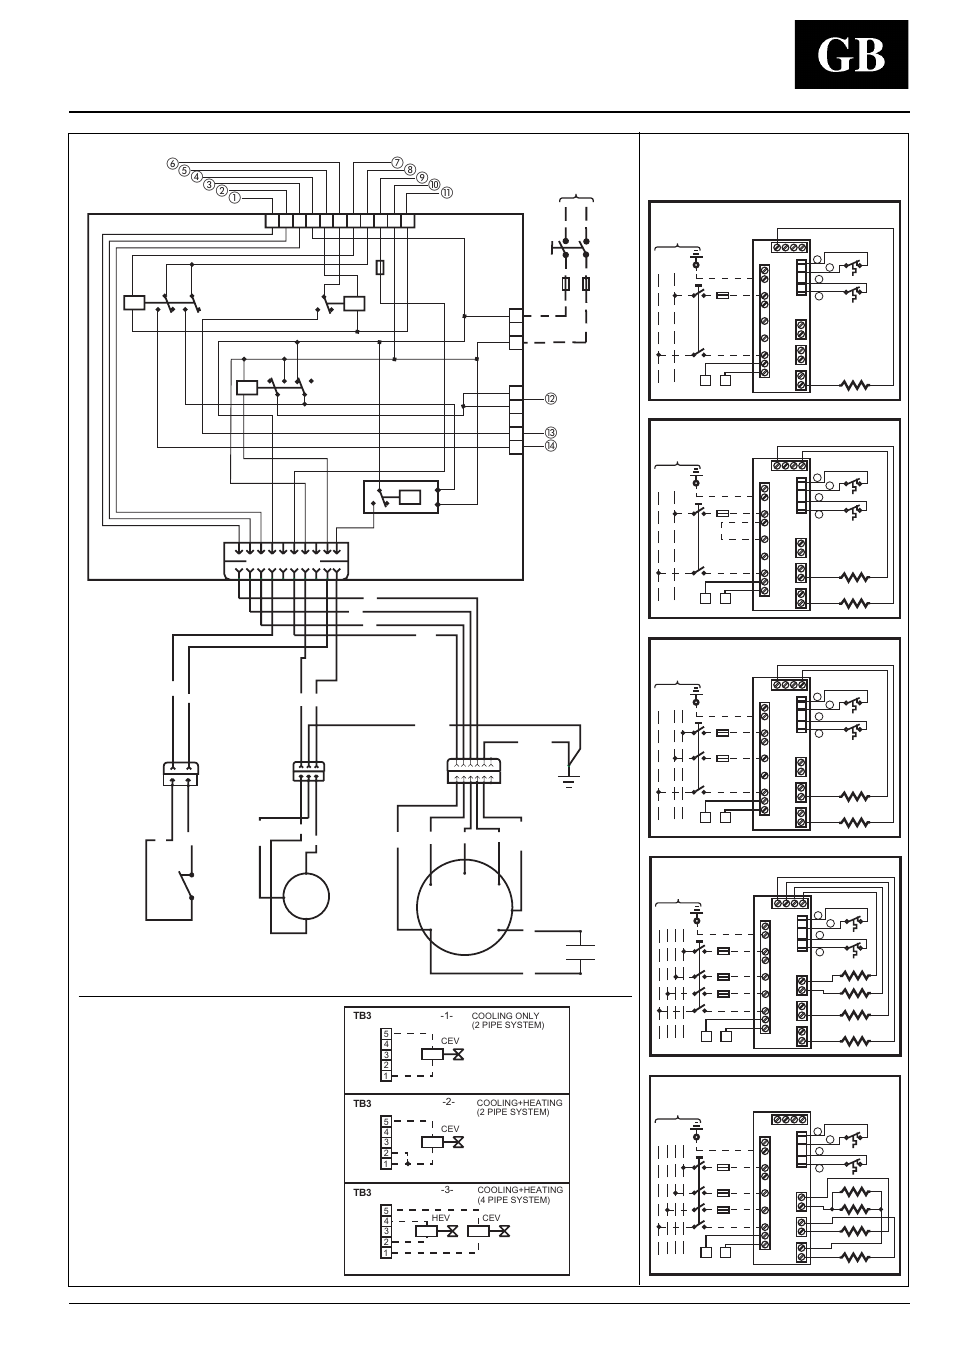 42 Gw  Electric Heater Supply  Wiring Diagram  Standard